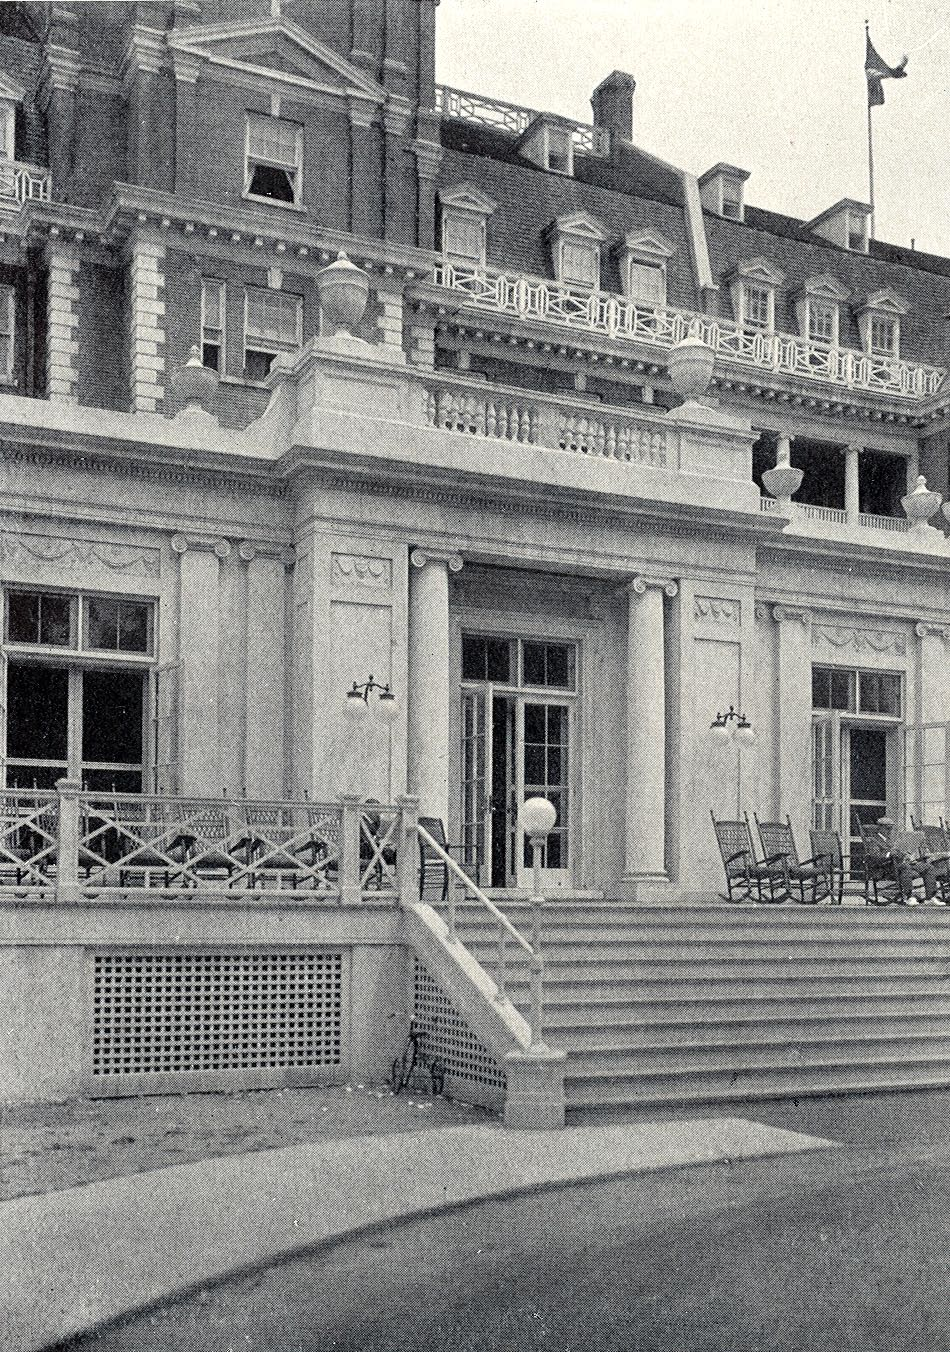 Vanderbilt Cup Races Blog The Garden City Hotel in 1913